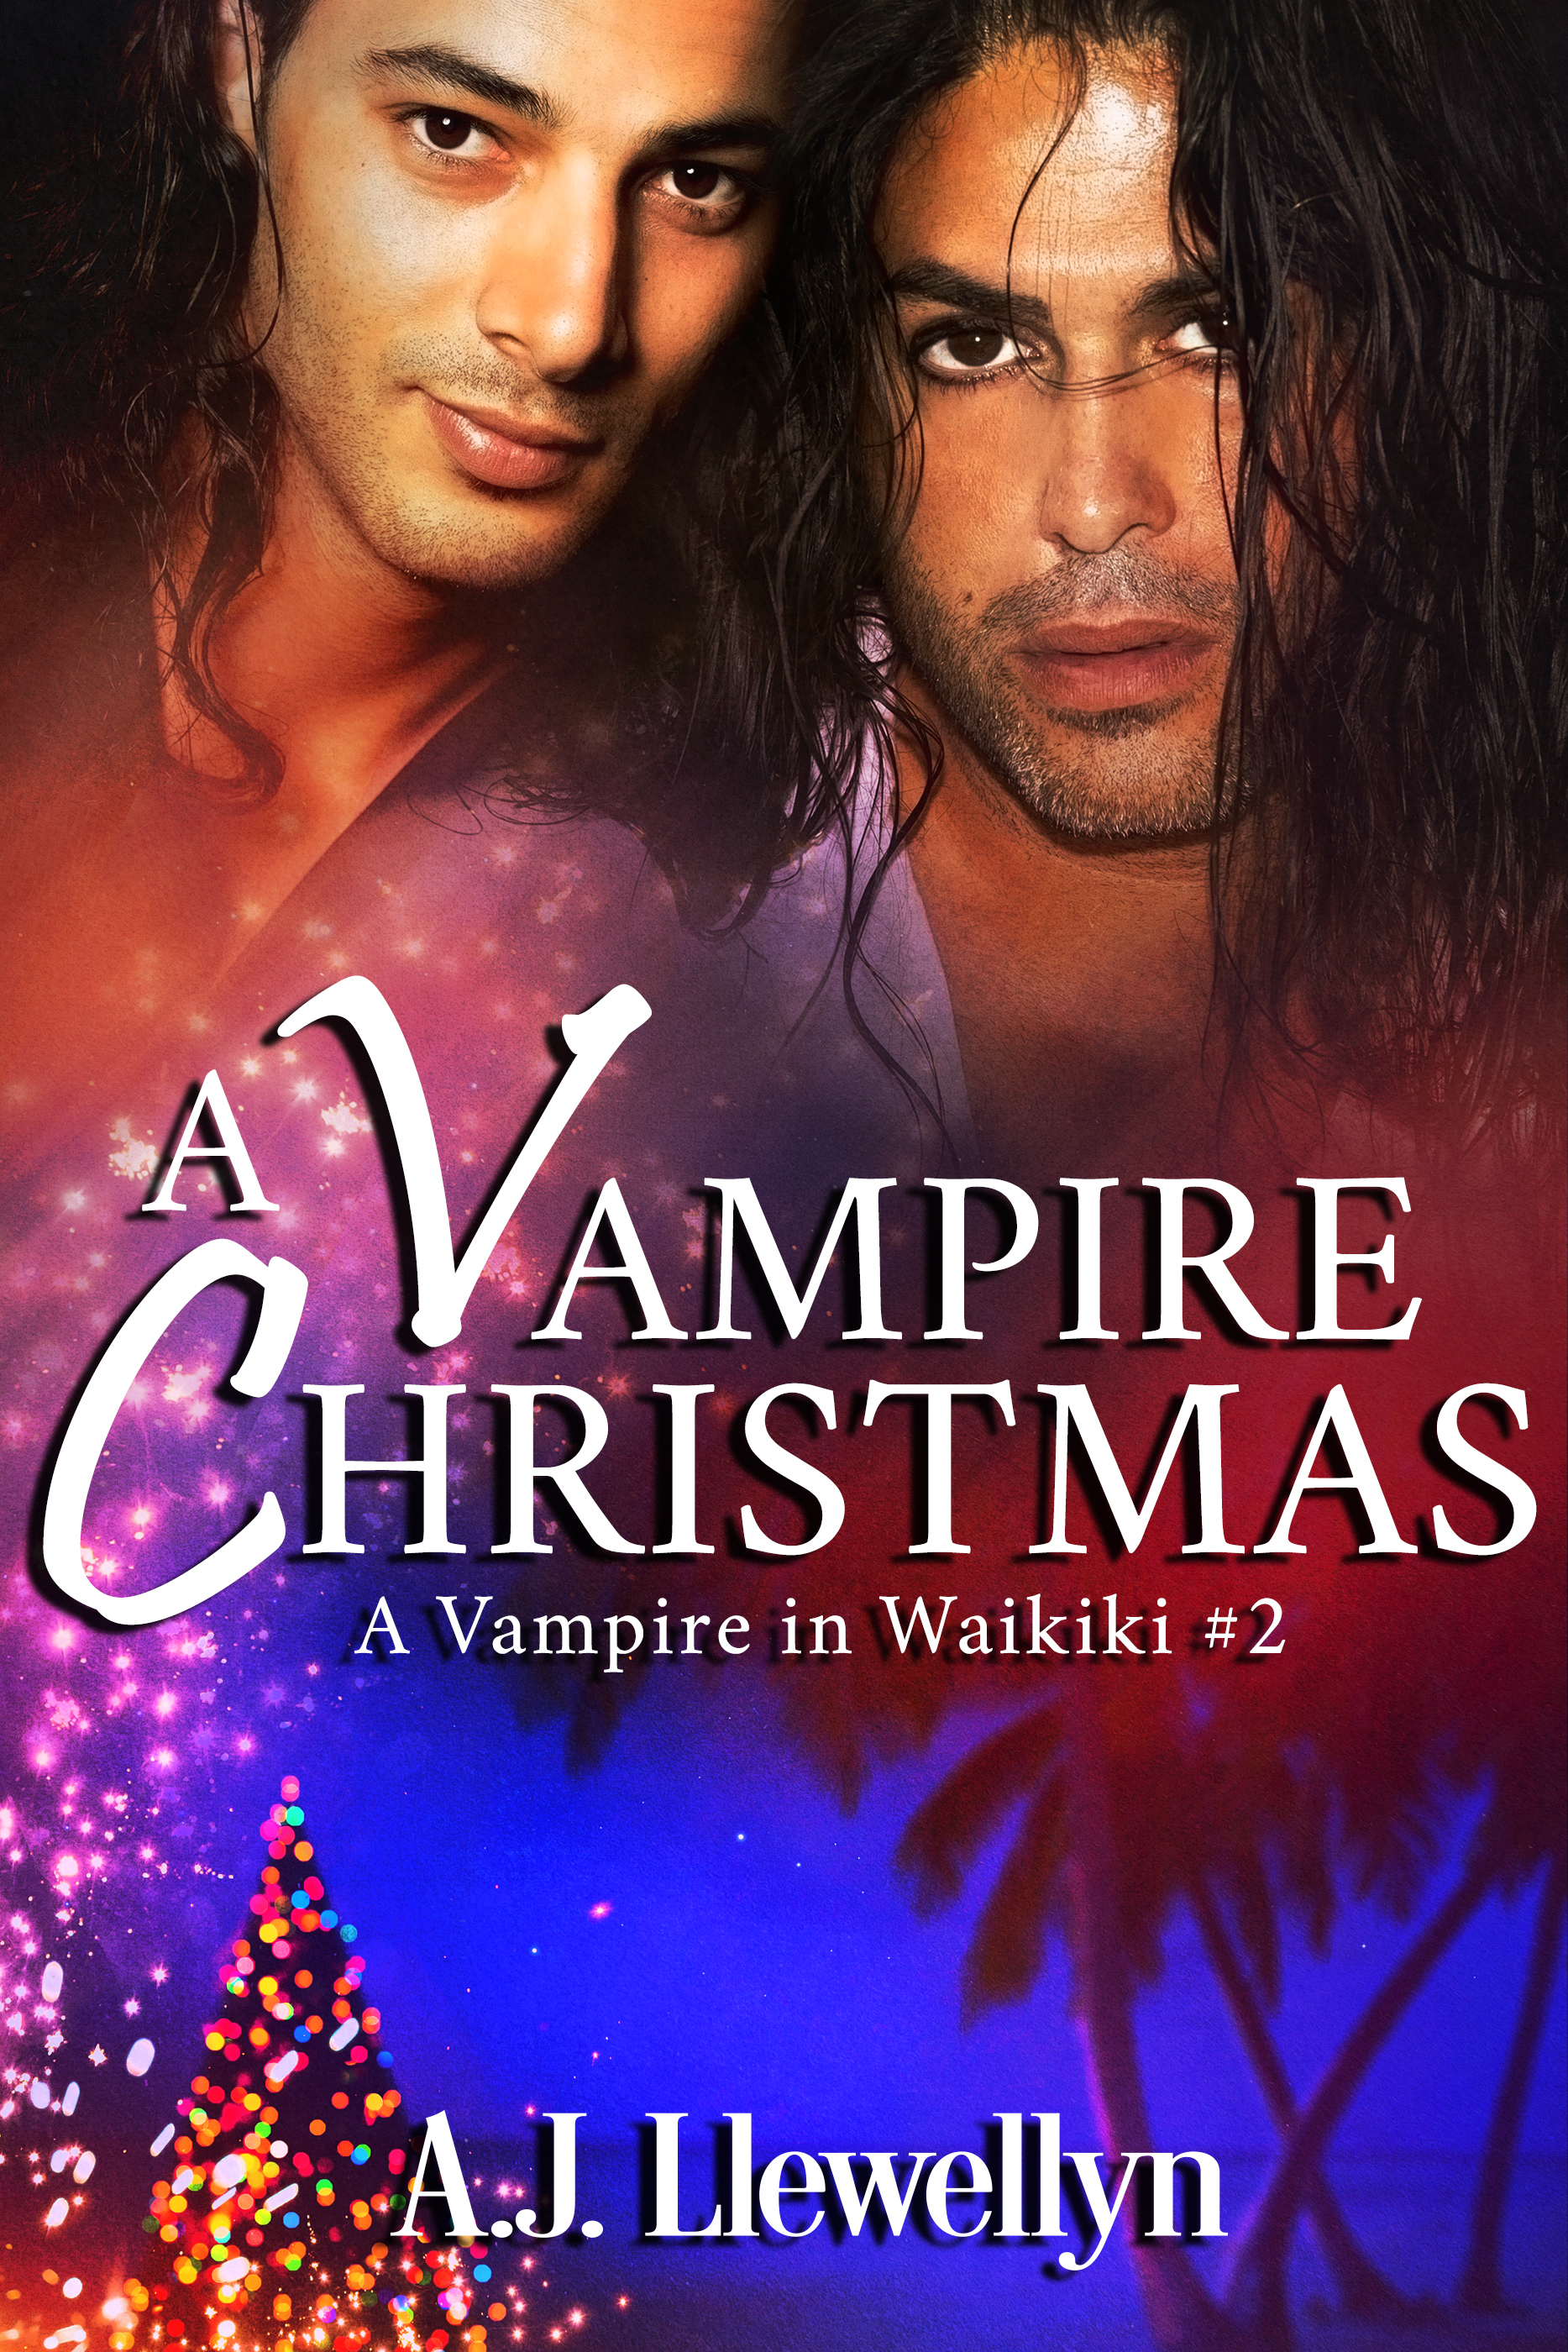 Author, A. J. Llewellyn » Hey, Hey, Vampires are flying into Waikiki ...